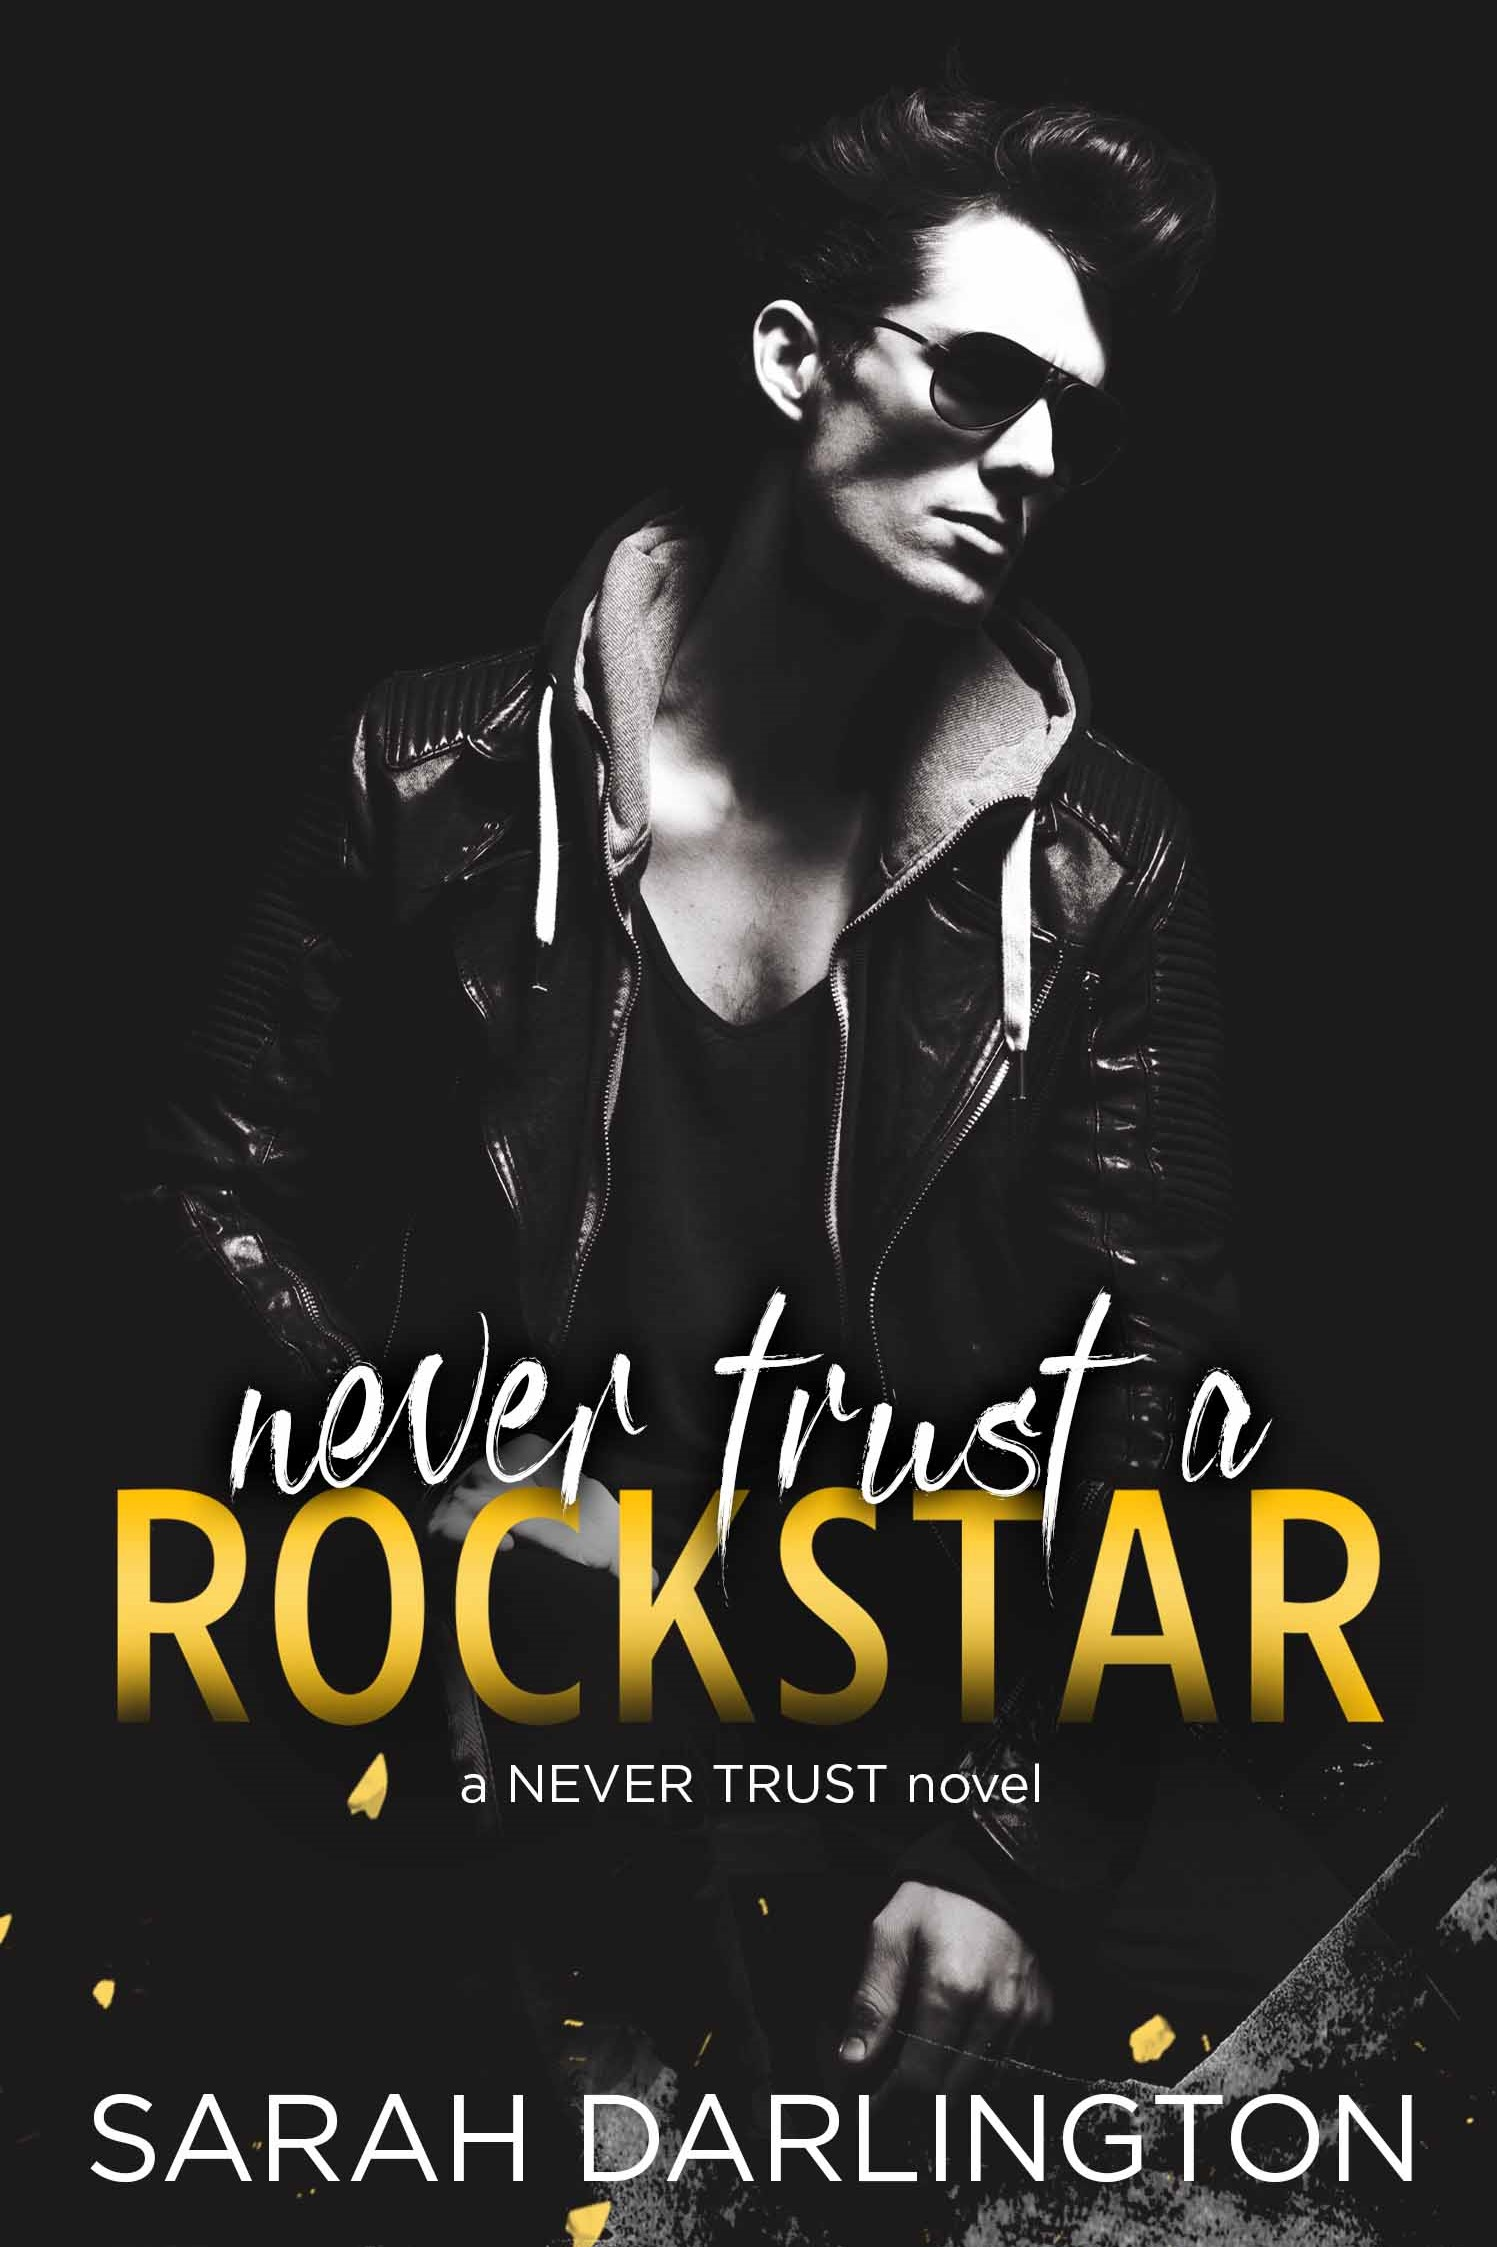 Never Trust a Rockstar by Sarah Darlington